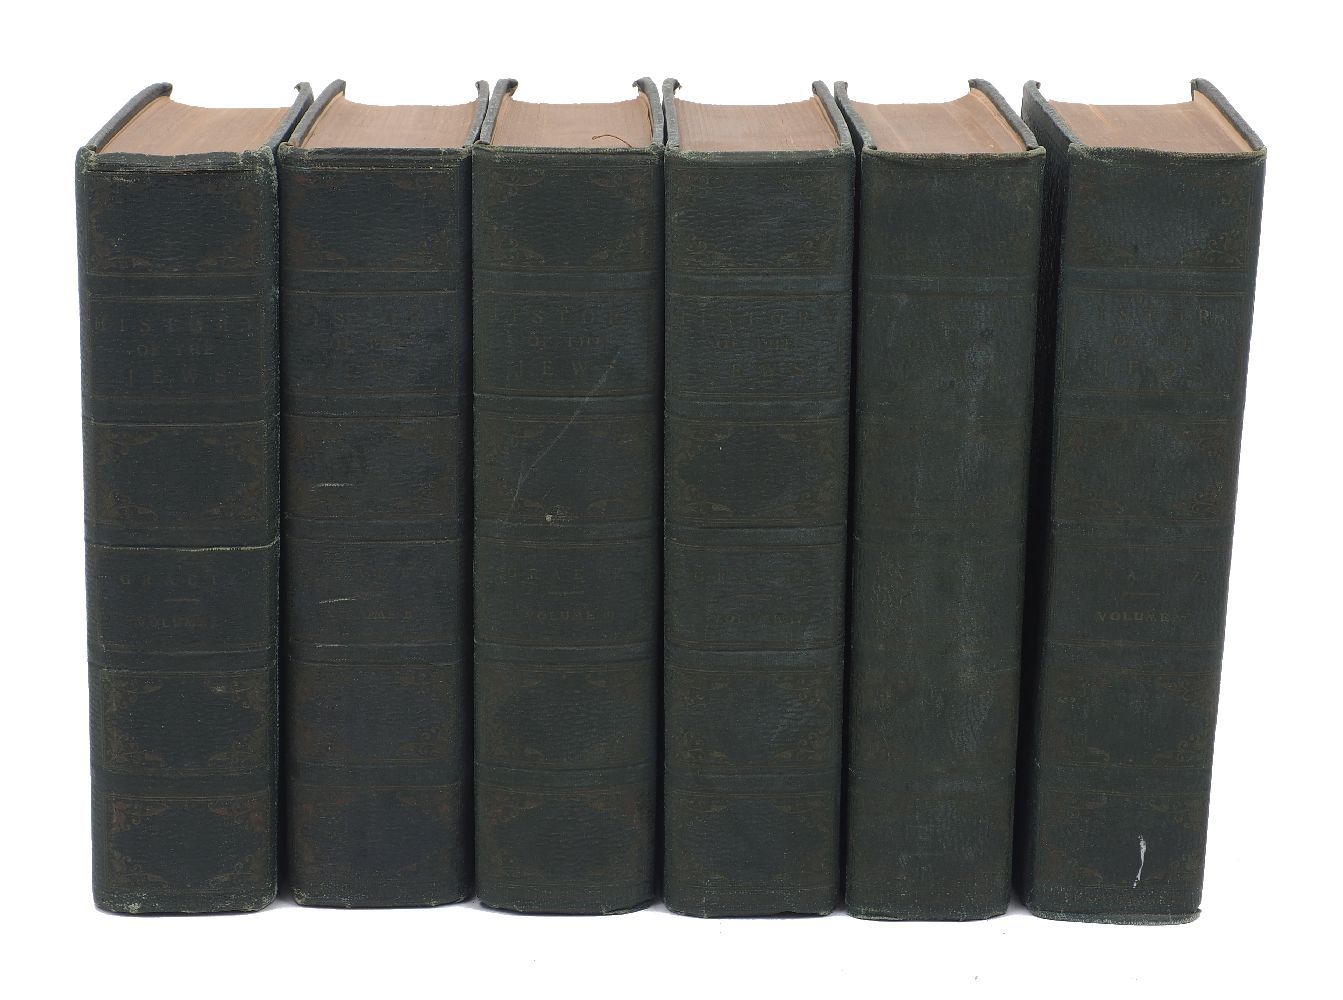 GRAETZ (H.), HISTORY OF THE JEWS, 6 Vols., green leather boards with gilt emblem to frontispiece,